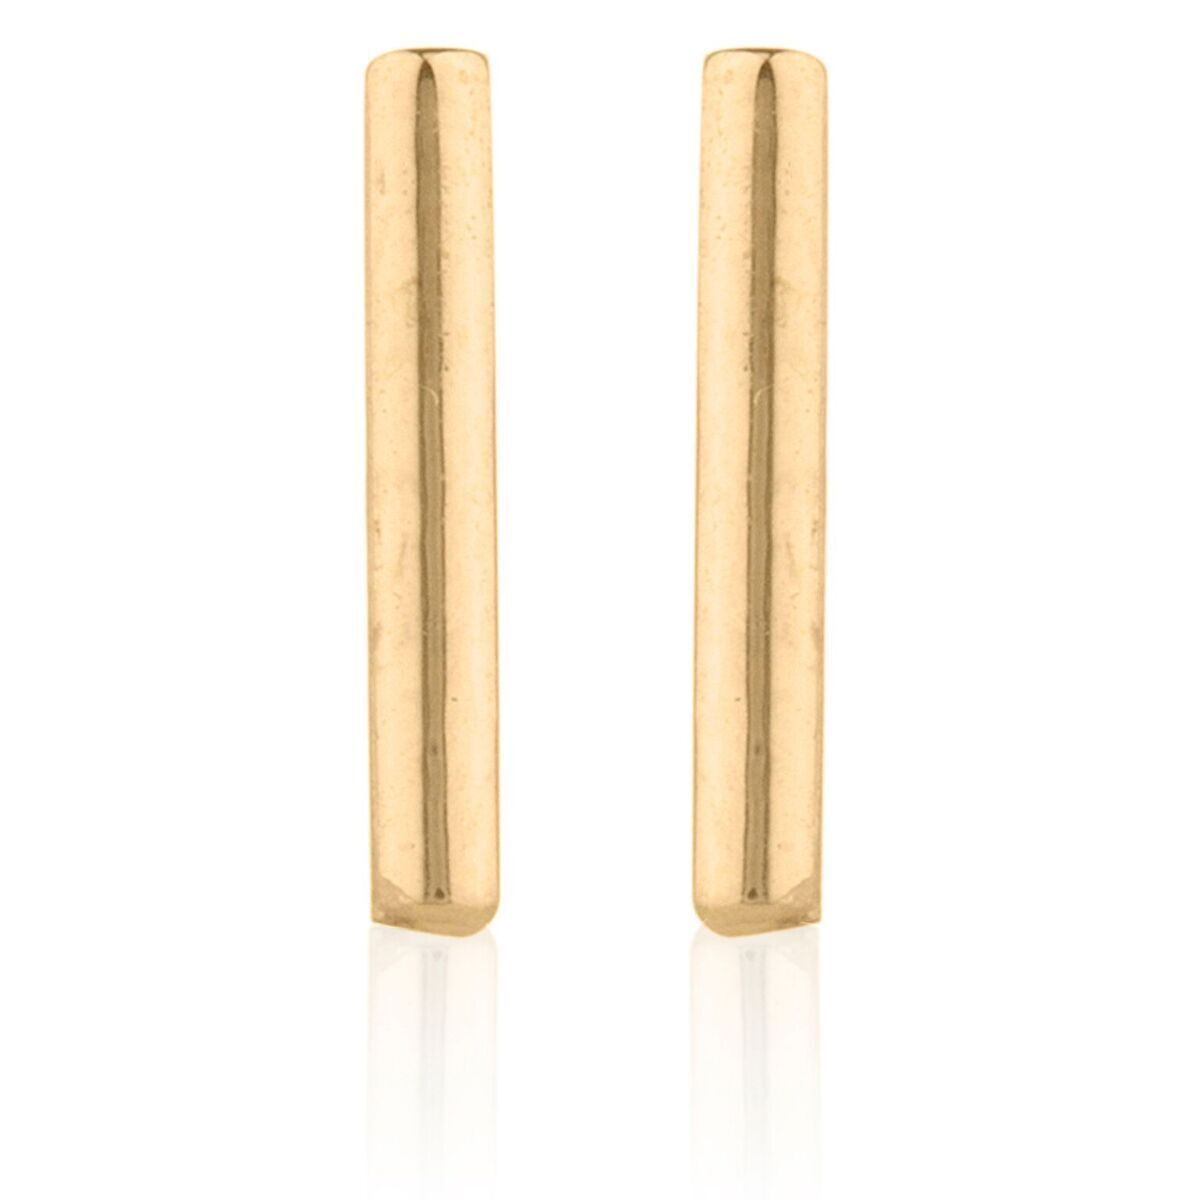 96663deb8 14K Solid Yellow/White/Rose Gold Plain T Bar Push Back Stud Earrings 8mm